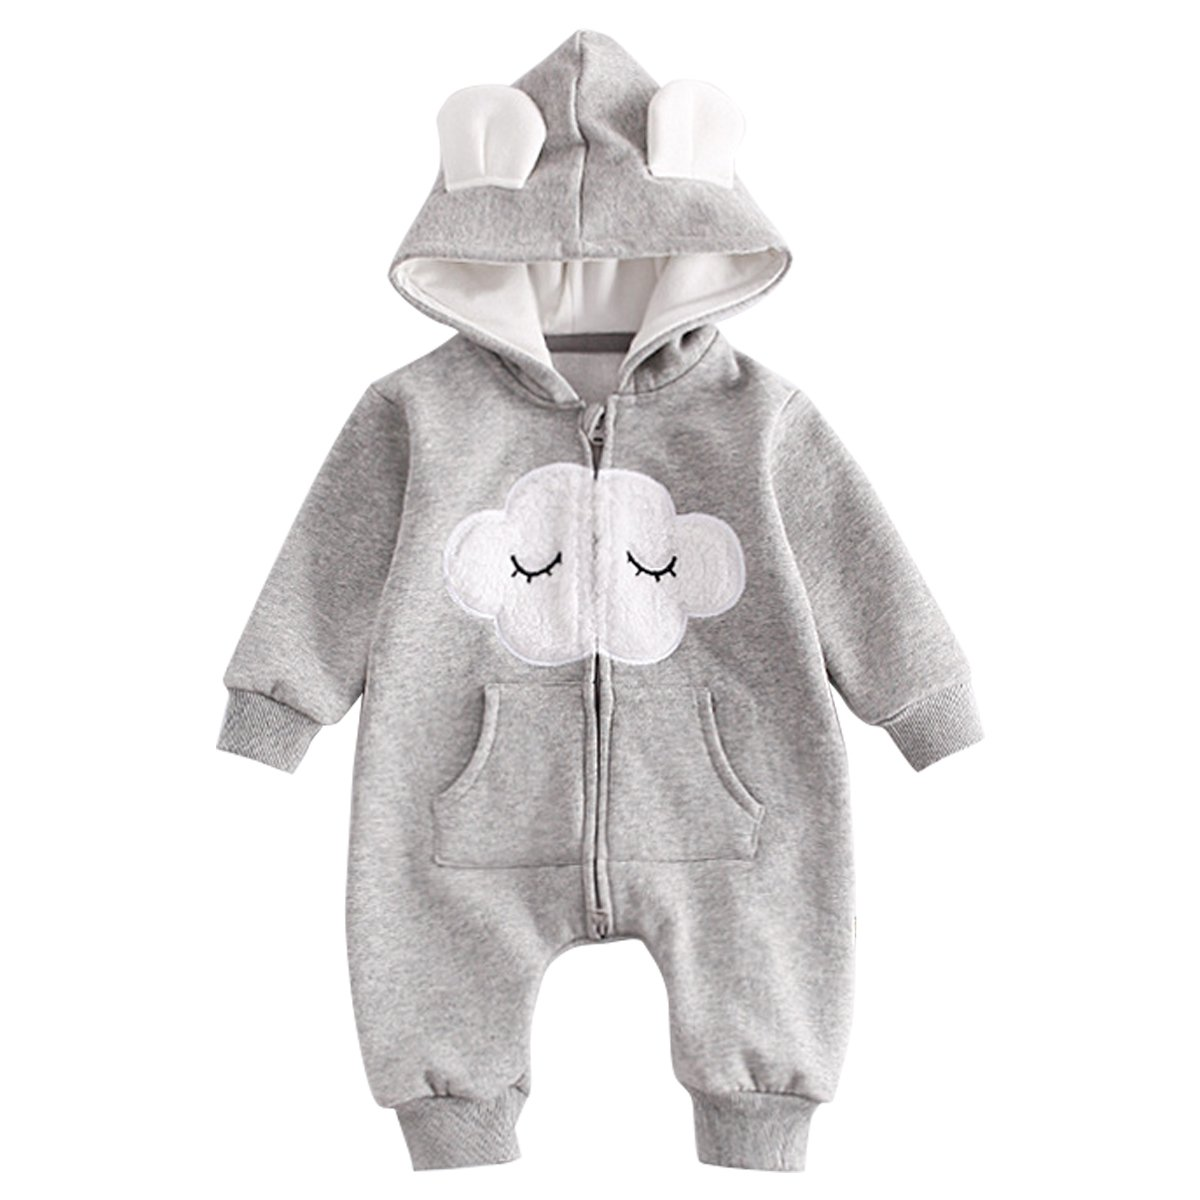 3bc78d7dd0a58 Bebone Baby Clothes Girls Boys Jumpsuit Kids Outwear  Amazon.co.uk  Clothing